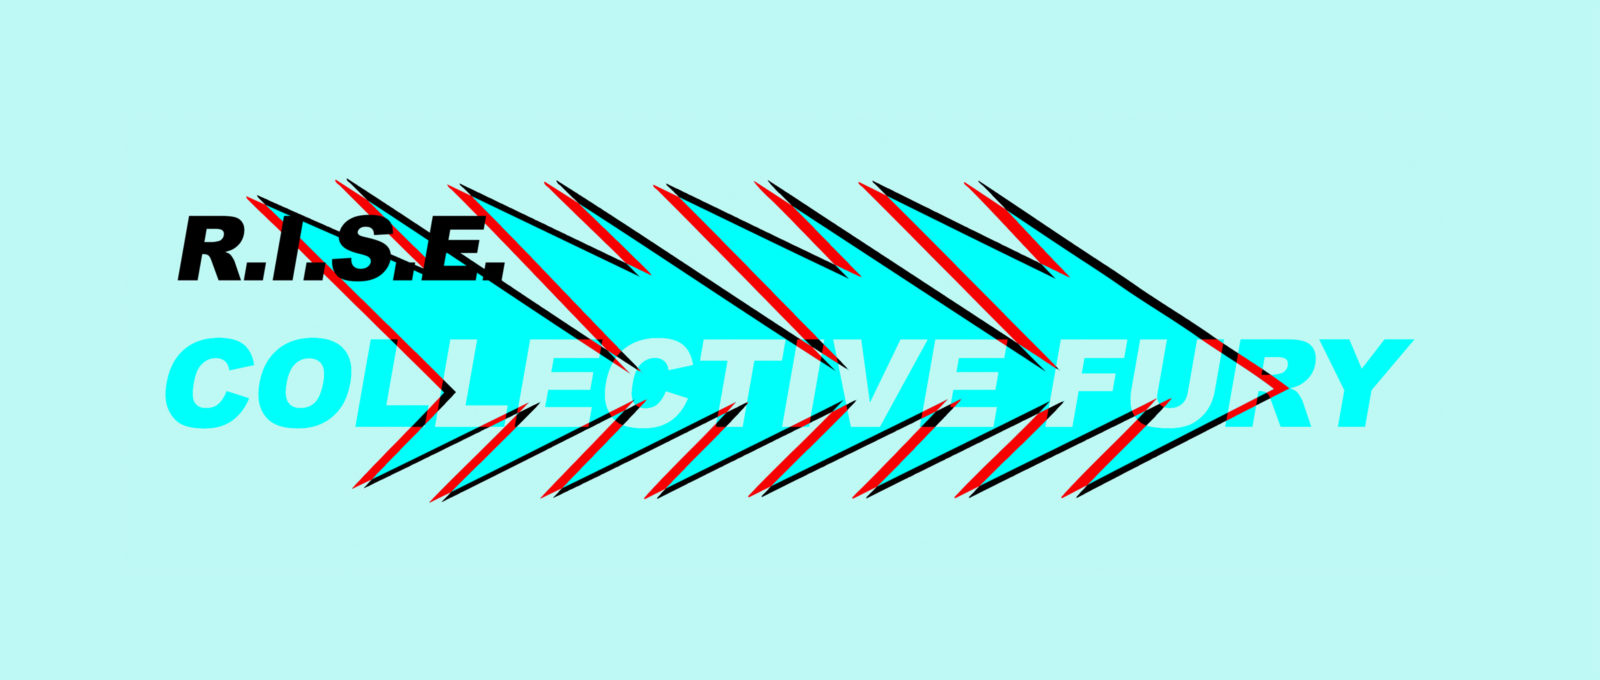 RISE COLLECTIVE FURY logo